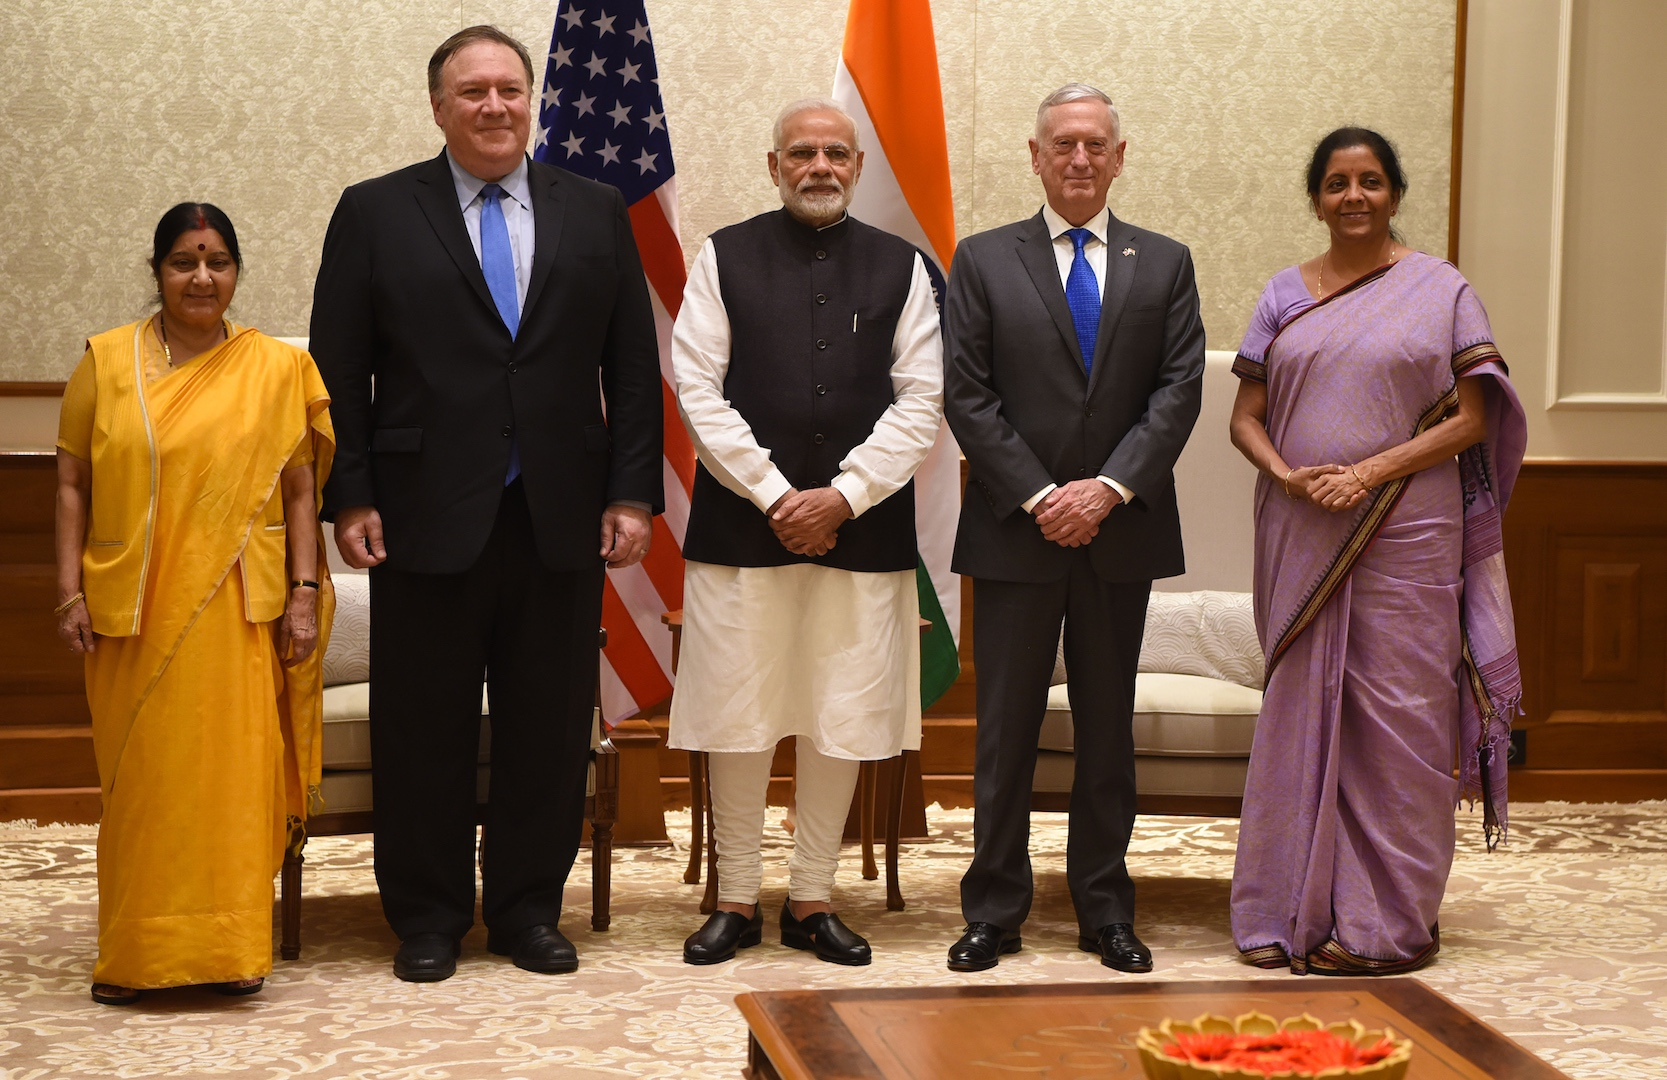 Indian Minister of External Affairs Sushma Swaraj, U.S. Secretary of State Michael Pompeo, Indian Prime Minister Narendra Modi, U.S. Defense Secretary James N. Mattis and Indian Defense Minister Nirmala Sitharaman meet at Modi's residence, New Delhi, India, Sept. 6, 2018. Mattis, Pompeo and their Indian counterparts met with Modi following the first ever U.S.-India 2+2 ministerial dialogue. DoD photo by Lisa Ferdinando